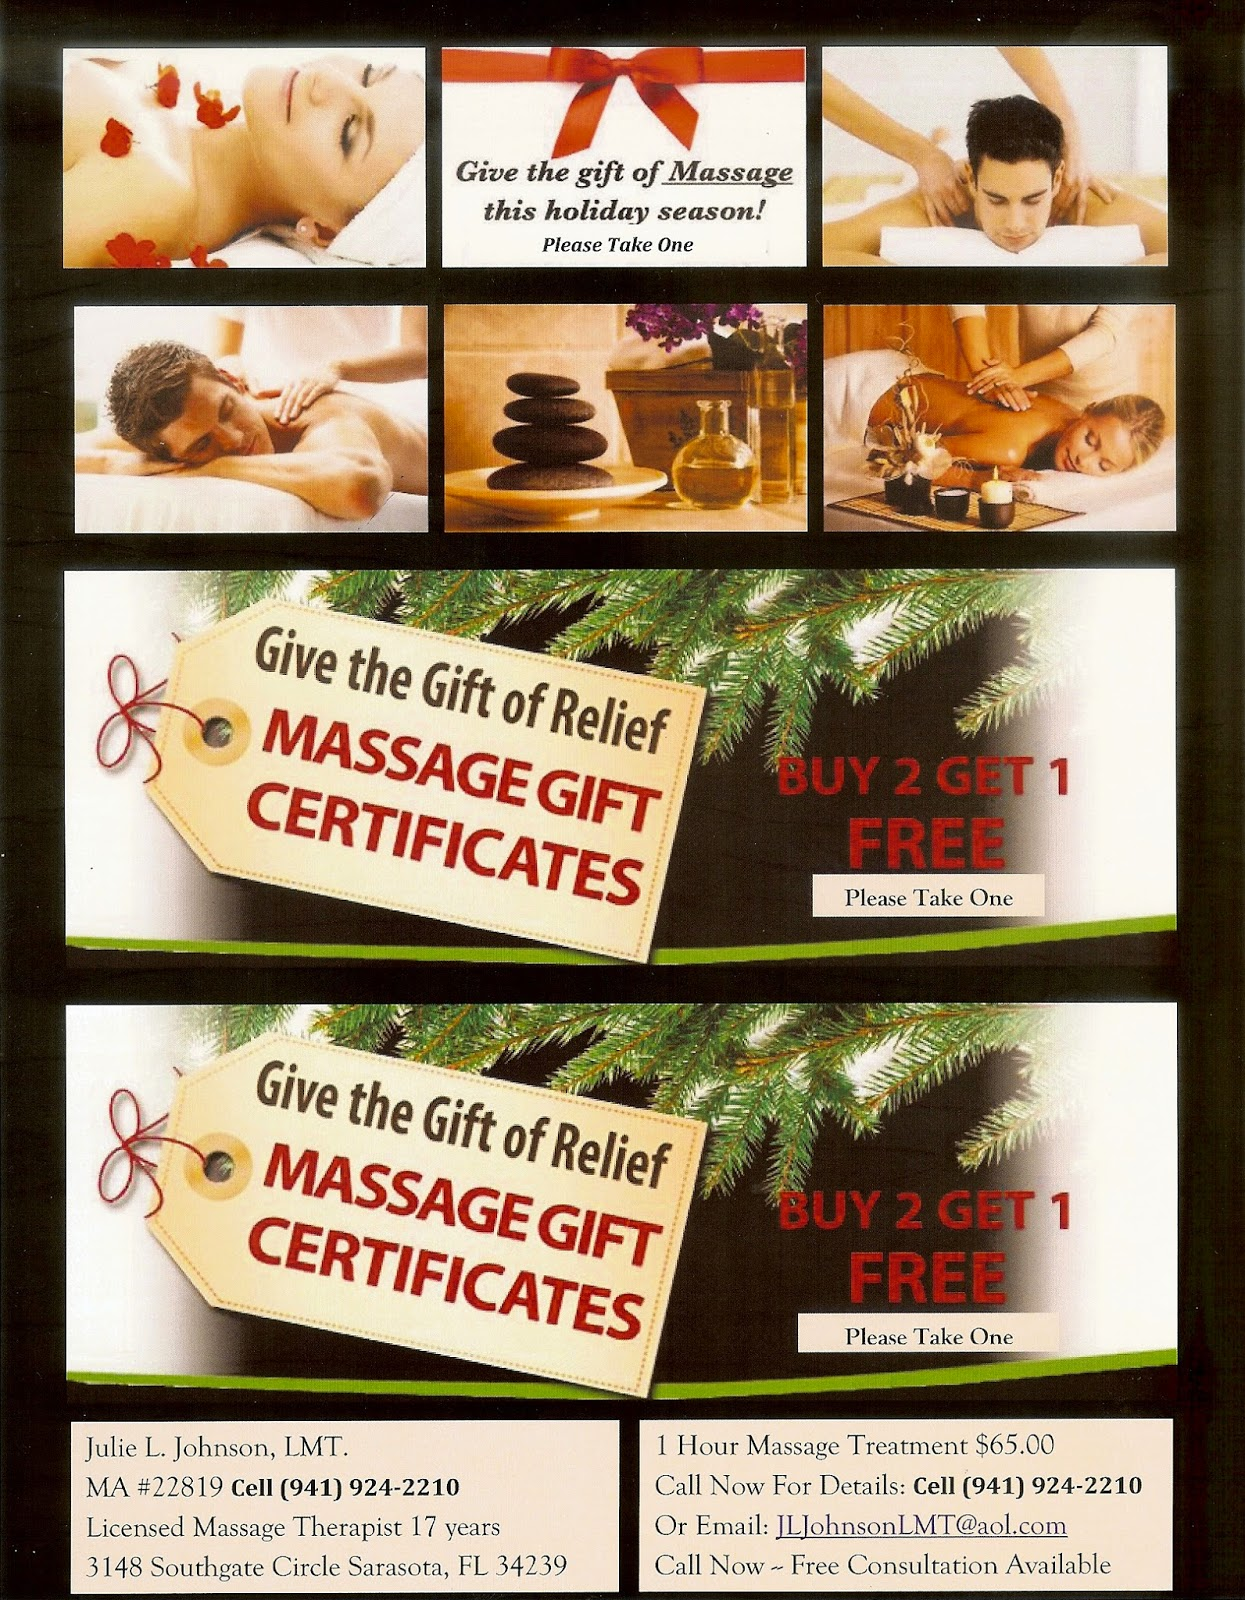 Sarasota Massage Therapy: Holiday Gift Certificate Special